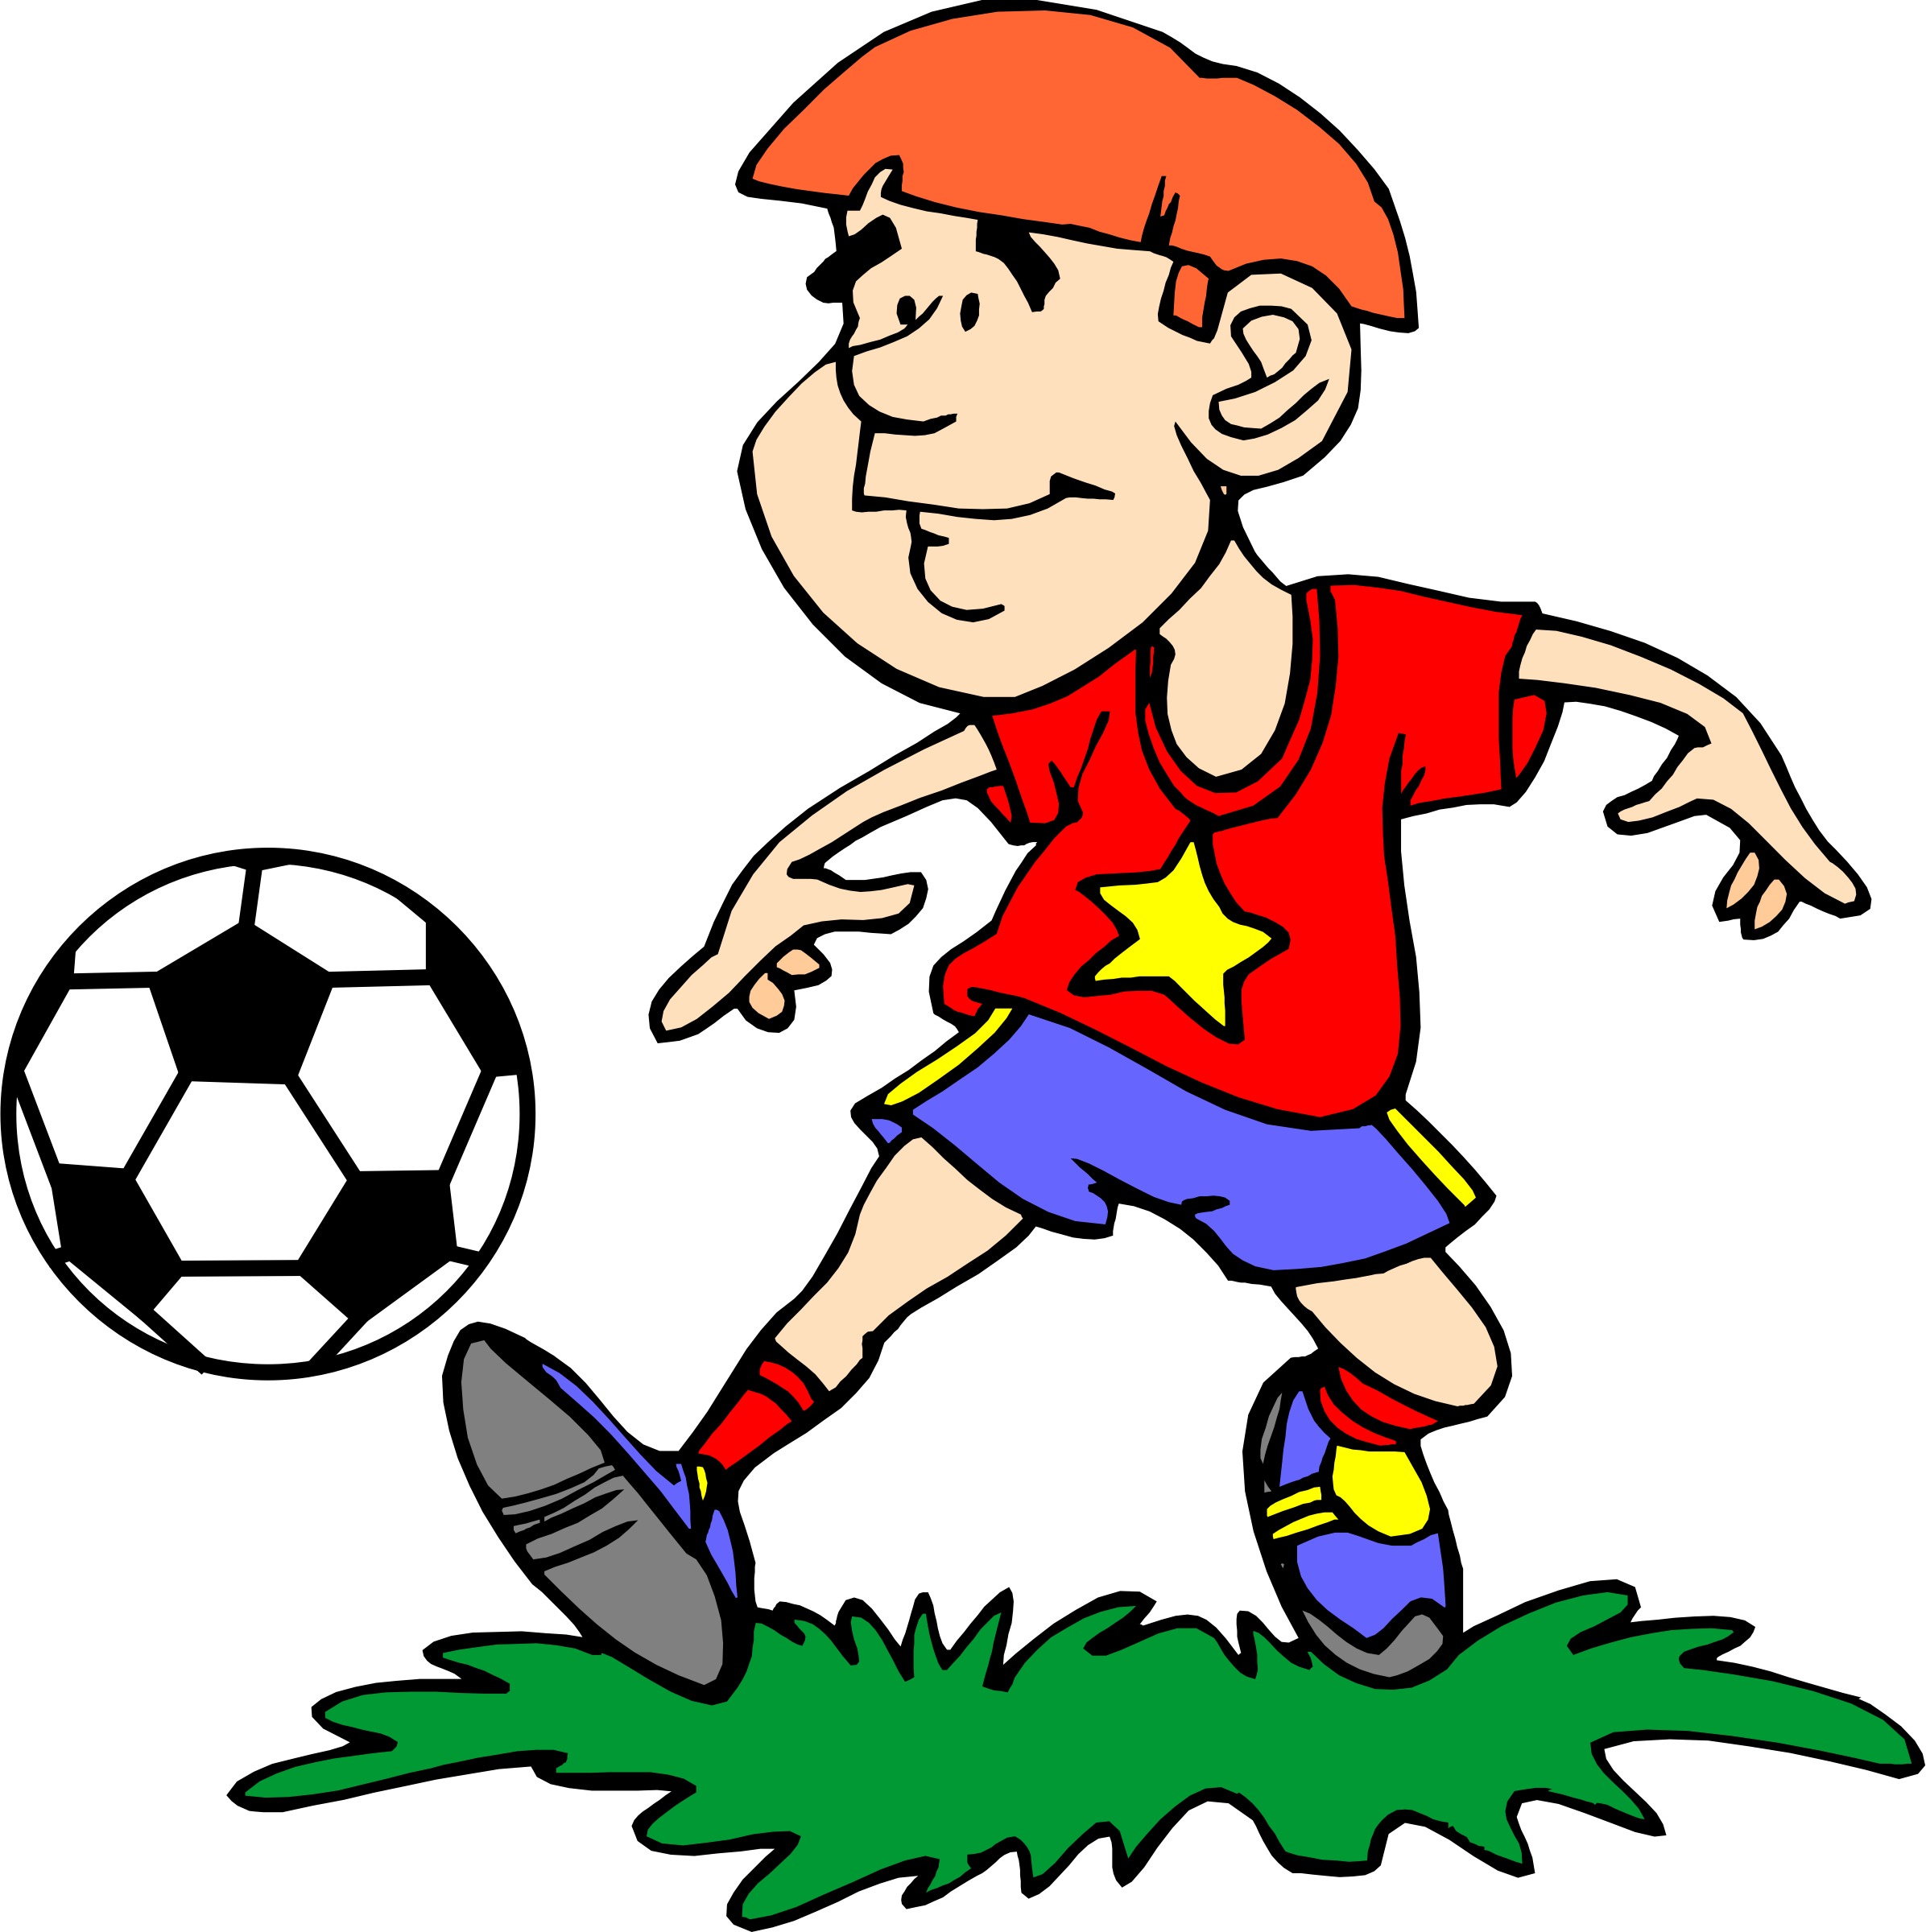 clipart soccer player 4 rh openclipart org soccer player clipart vector soccer player clipart vector